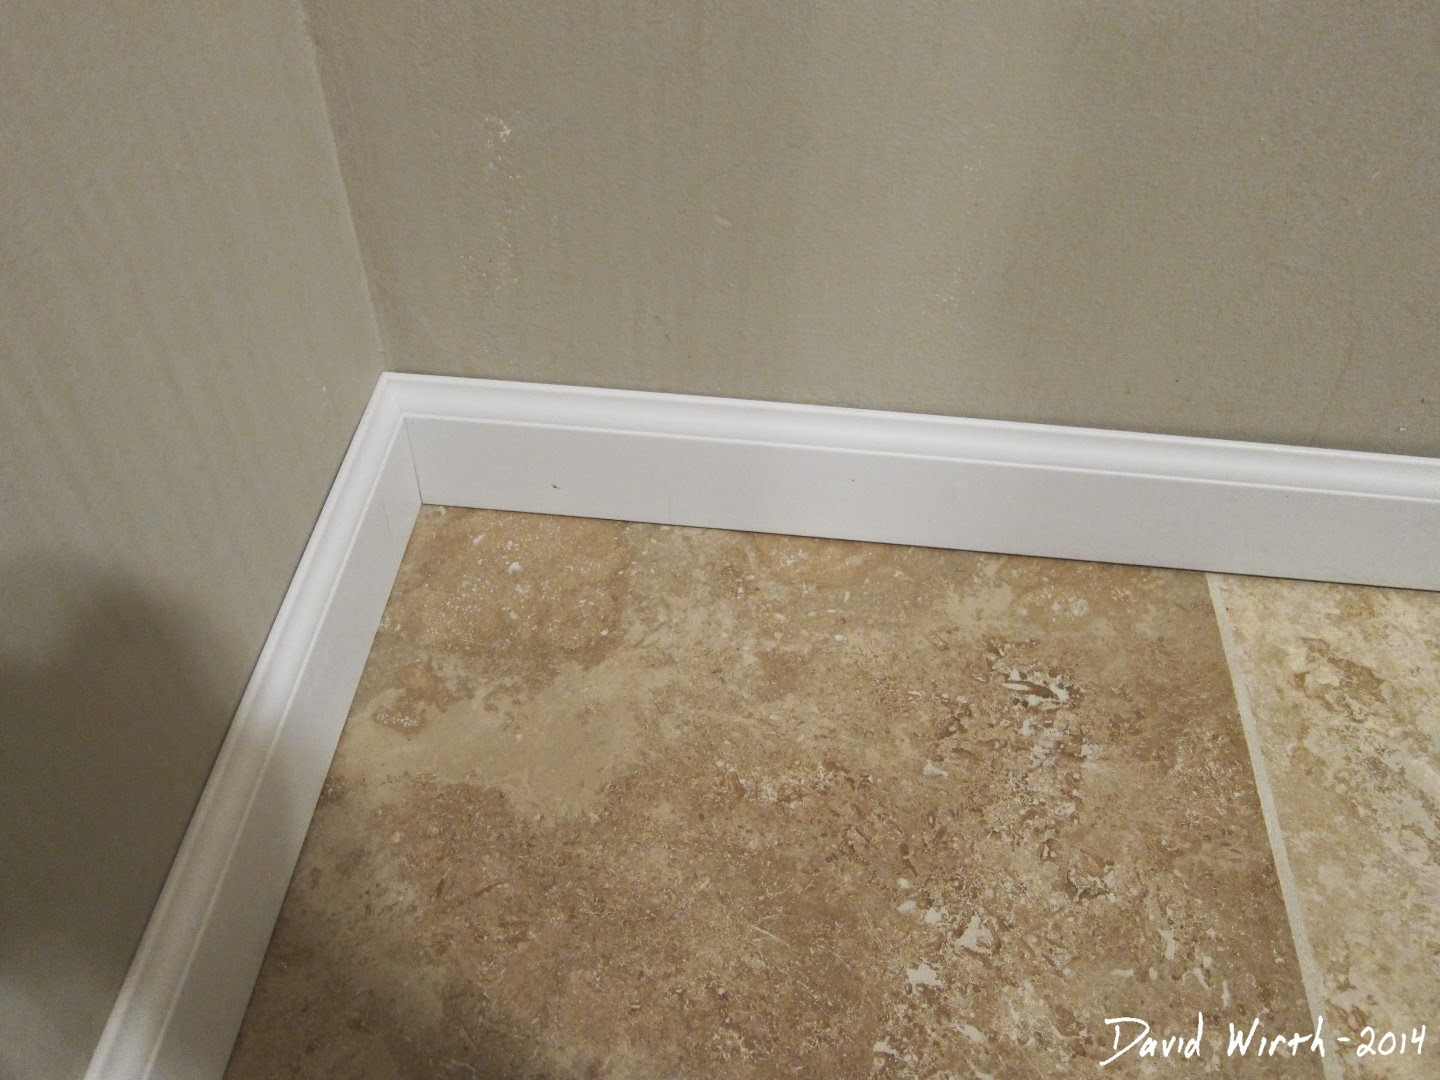 Wood baseboard in bathroom - Install Wood Baseboard Caulk